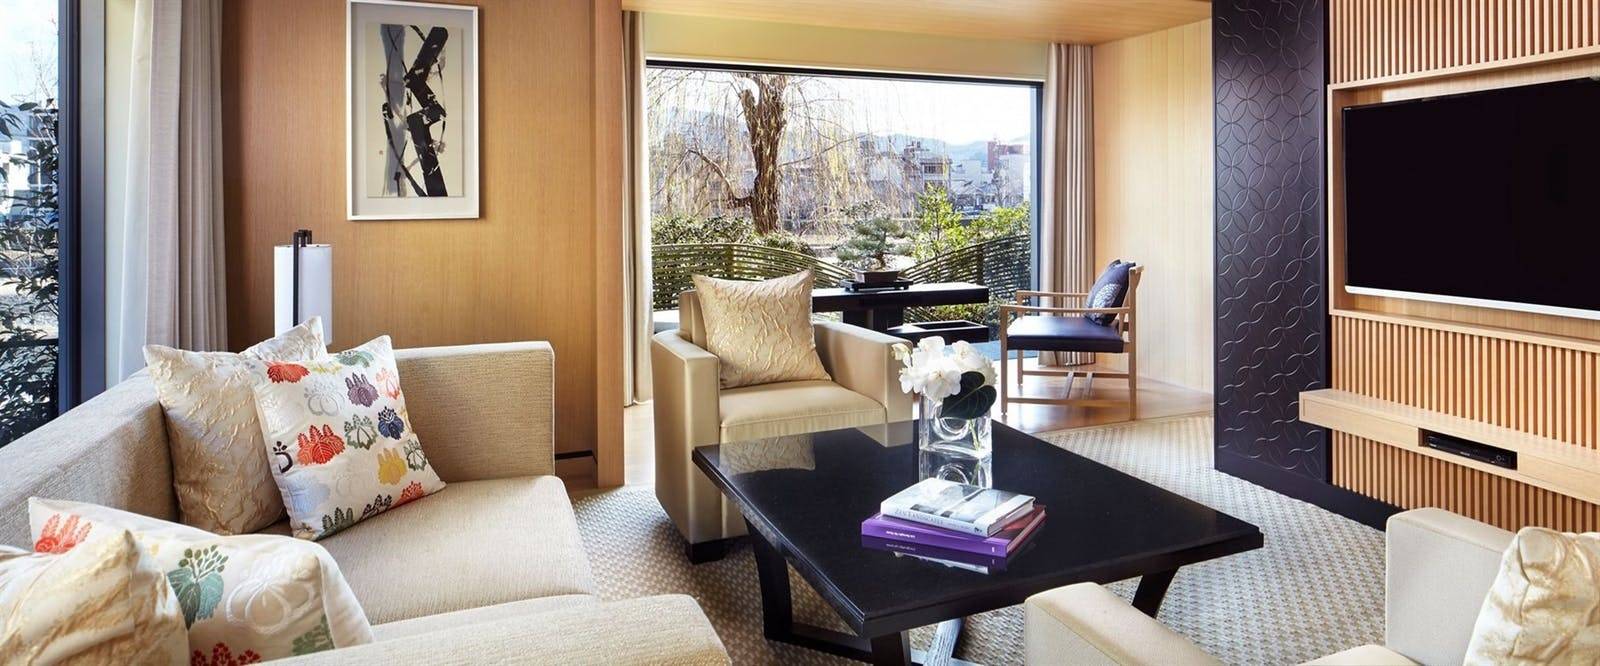 Corner Suite Kita at The Ritz-Carlton Kyoto, Japan